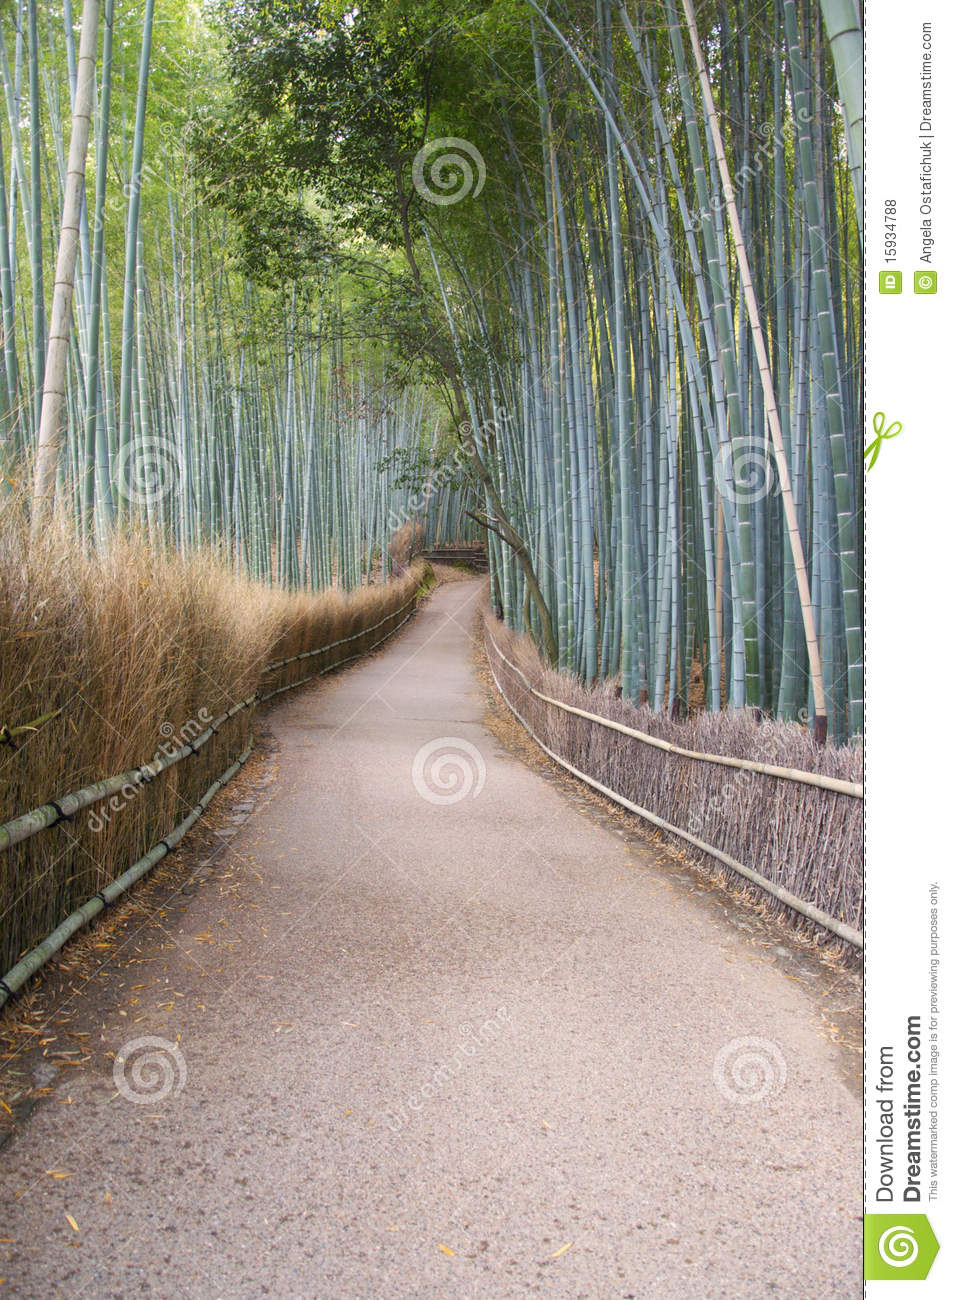 Path and bamboo forest in Kyoto Japan